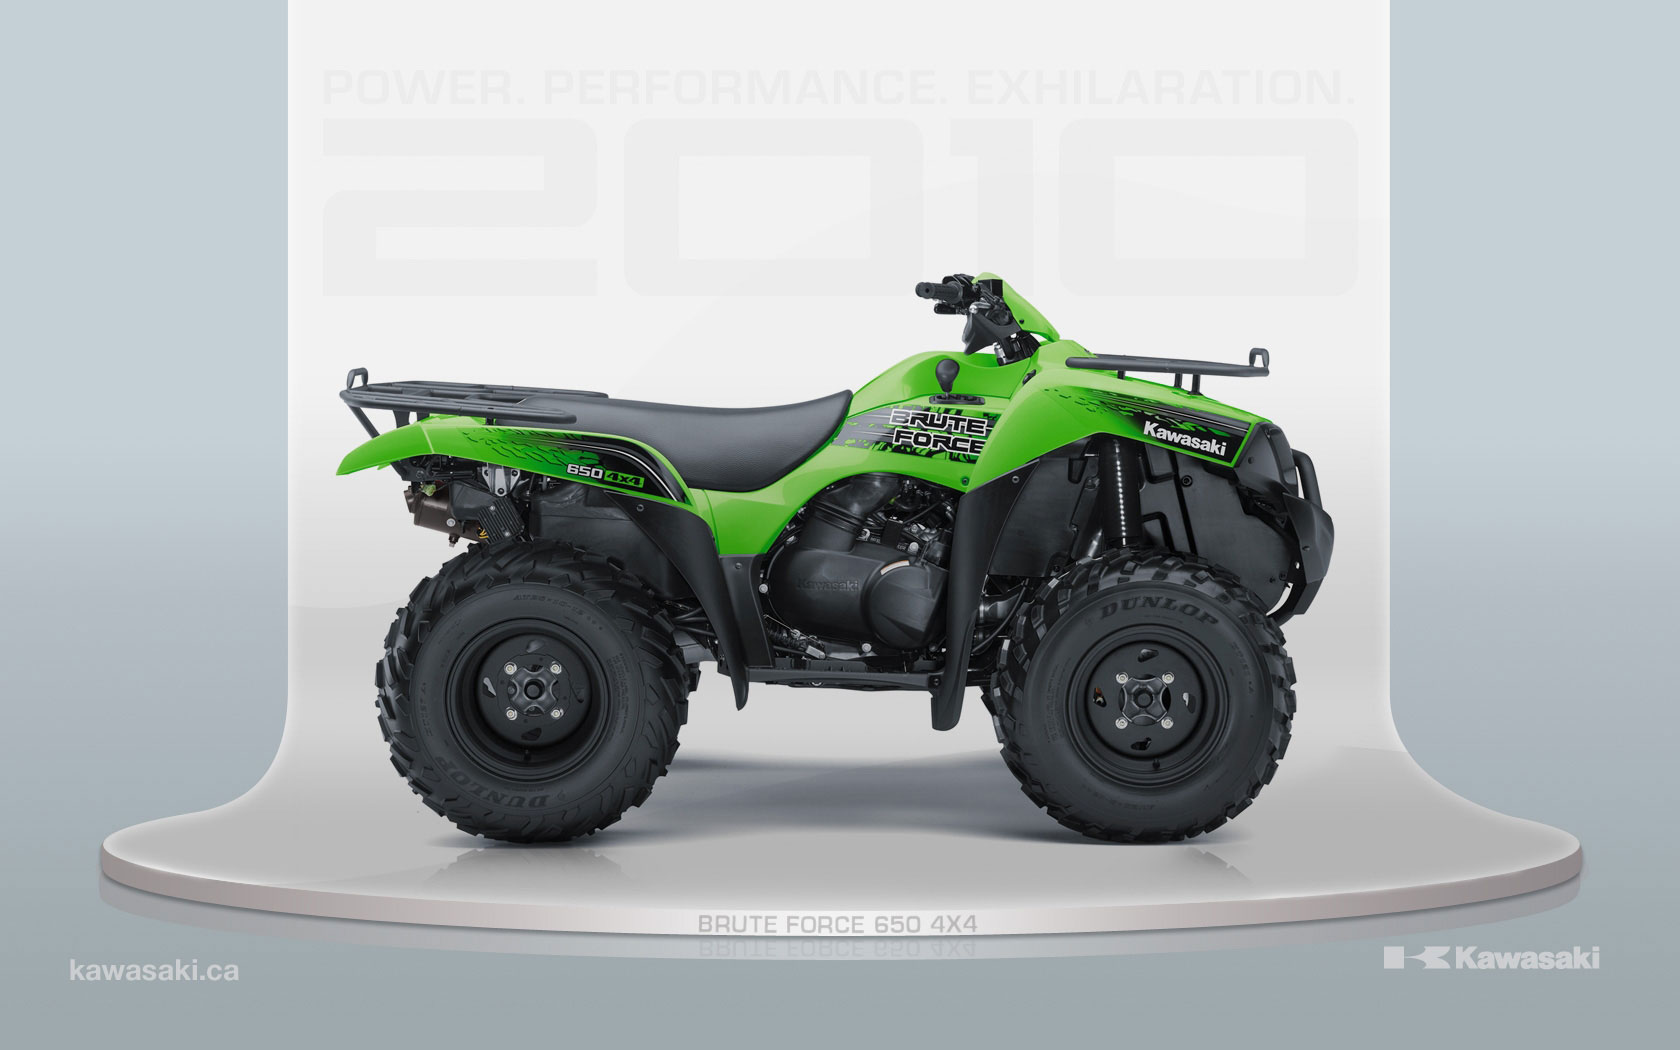 Kawasaki Brute Force 650 4x4 2011 images #86188